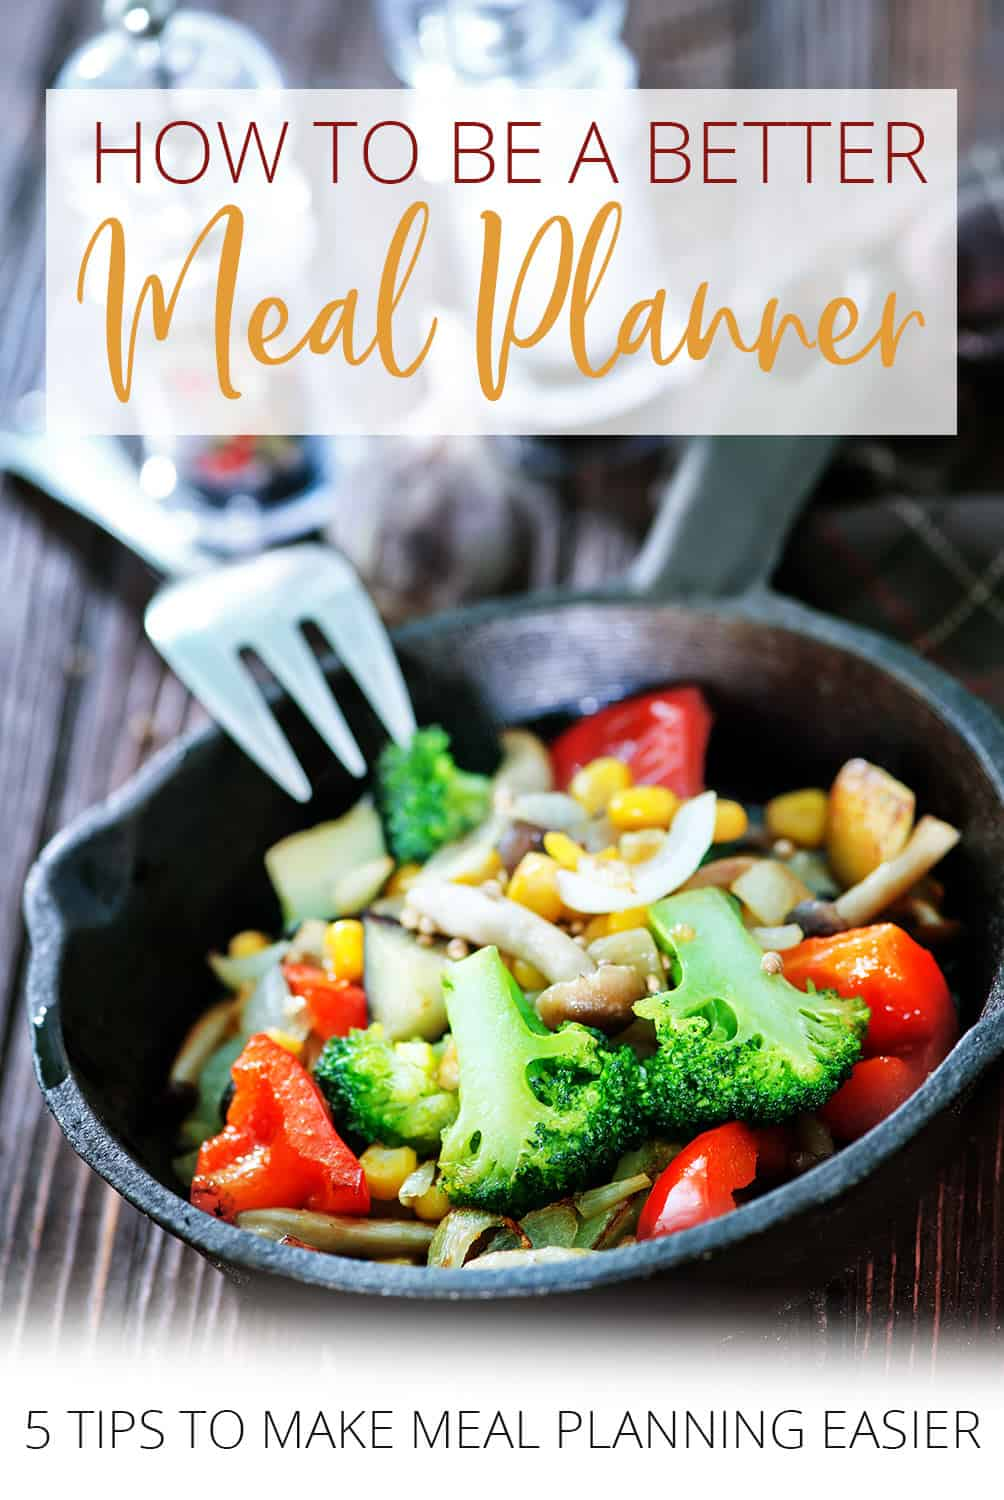 How to be a better meal planner - 5 tips to make meal planning easier